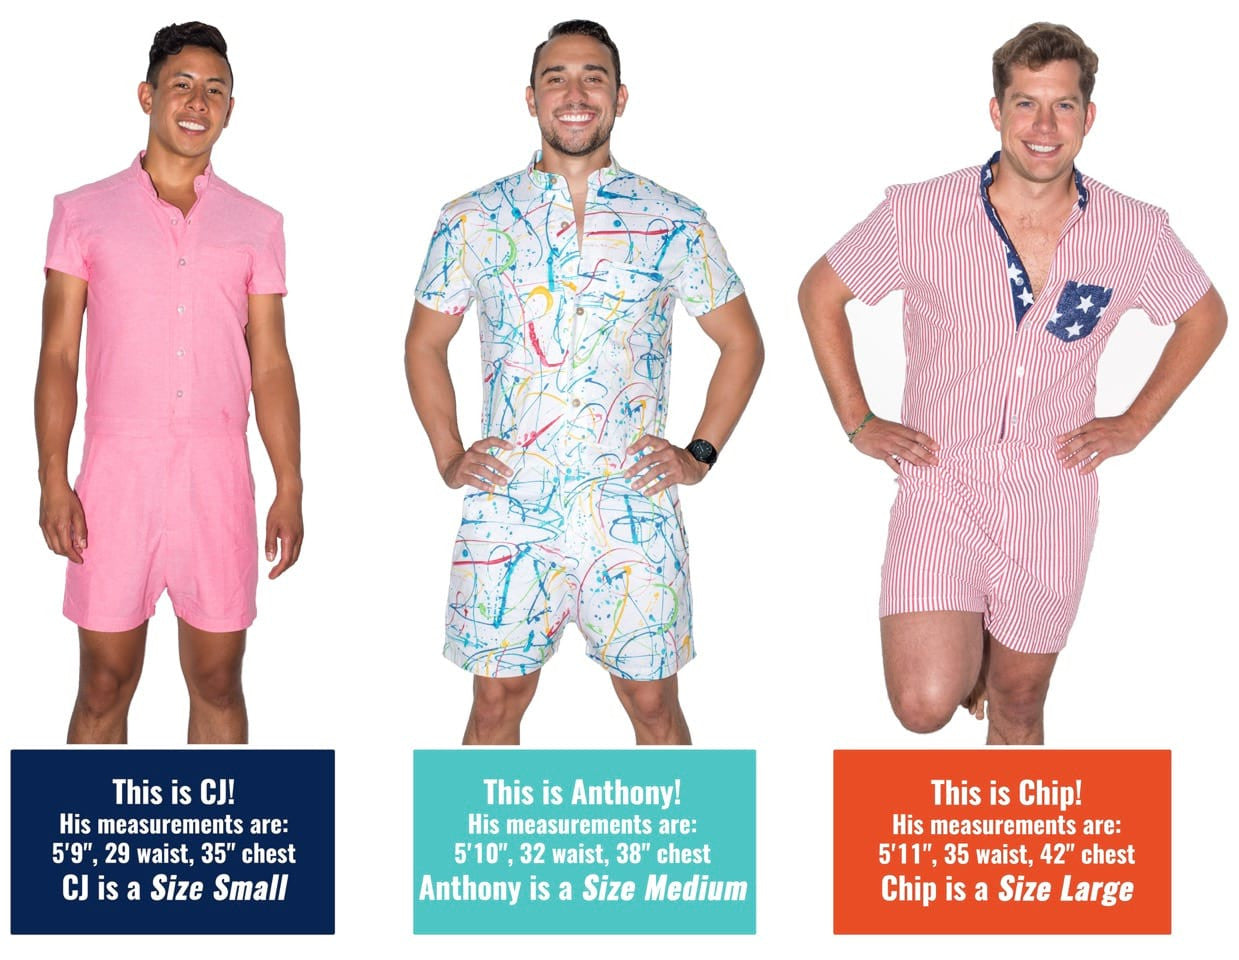 RompHim male romper fit guide with three models in Small, Medium, Large